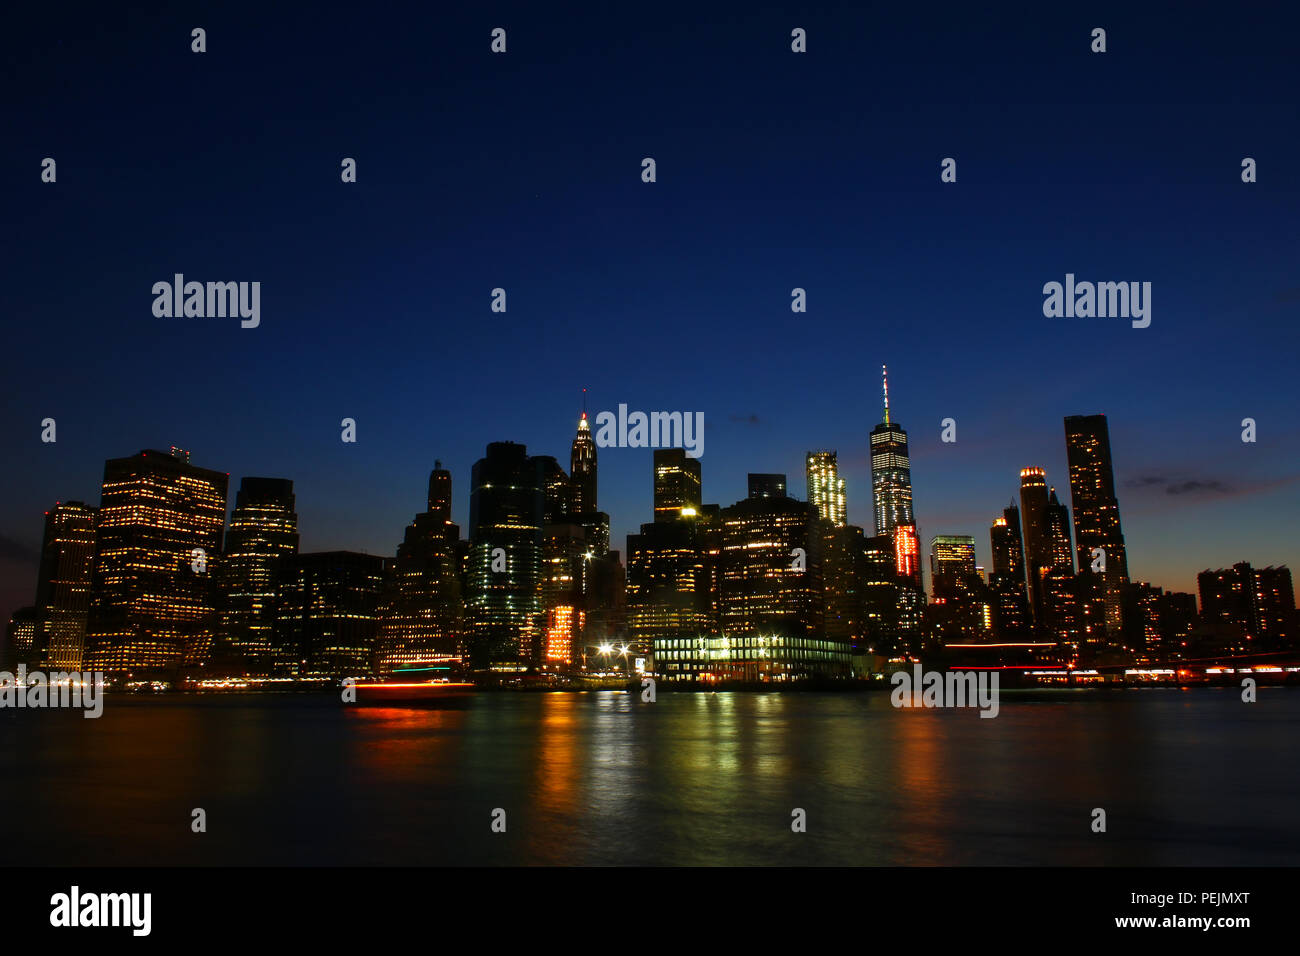 NEW YORK, NY - JULY 03: Financial District, Lower Manhattan skyline after sunset as seen from Brooklyn Bridge Park, Brooklyn Stock Photo